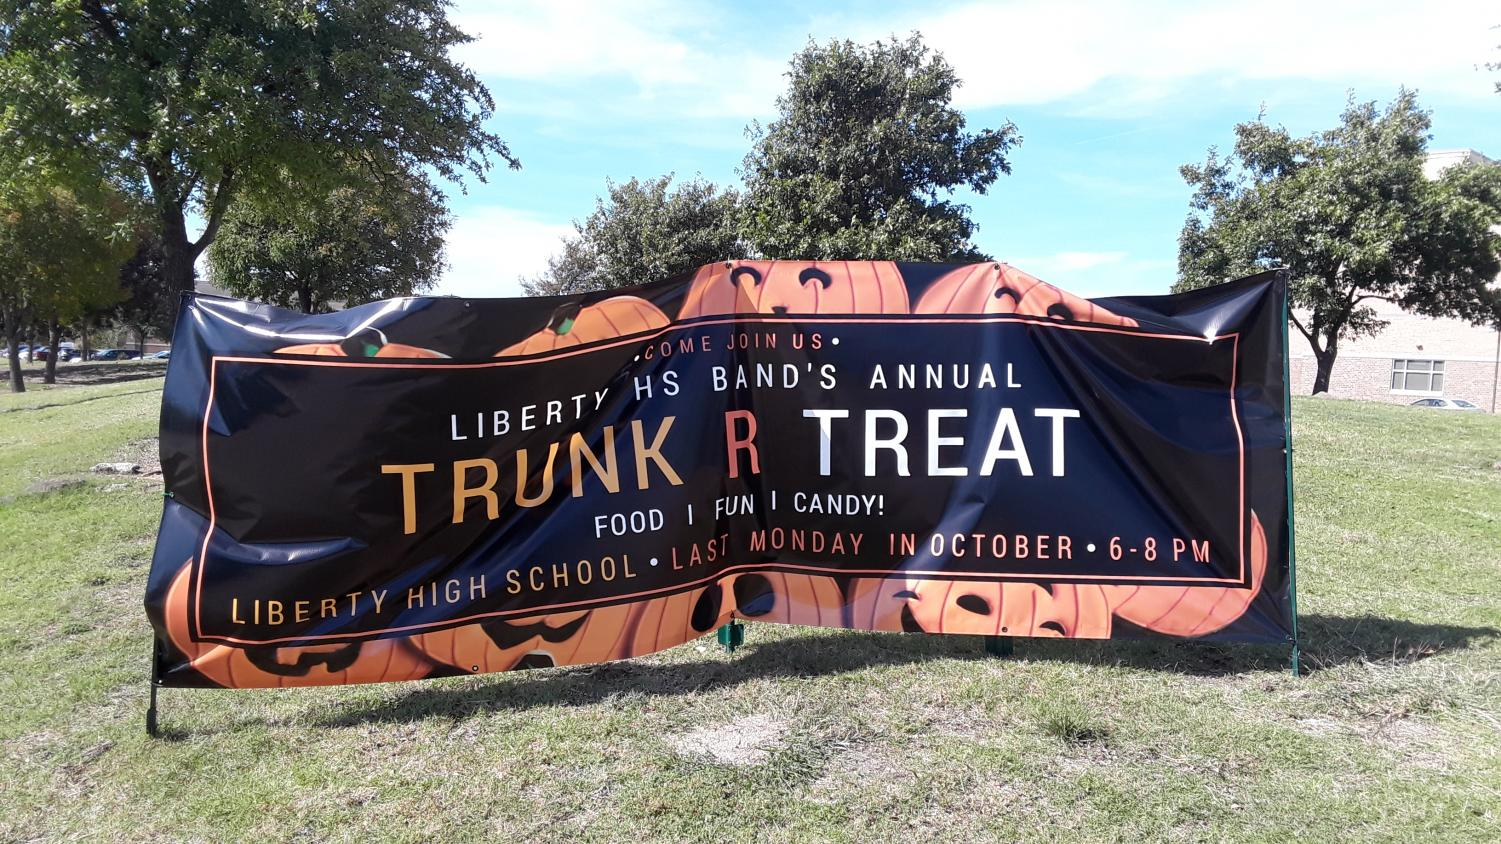 The 5th annual Trunk R Treat is set to take place in the east parking lot at 6:00 p.m. on Monday, Oct. 26, 2018. Local kids and families will get a chance to interact with dozens of clubs and organizations on campus as they pass out candy to participants.